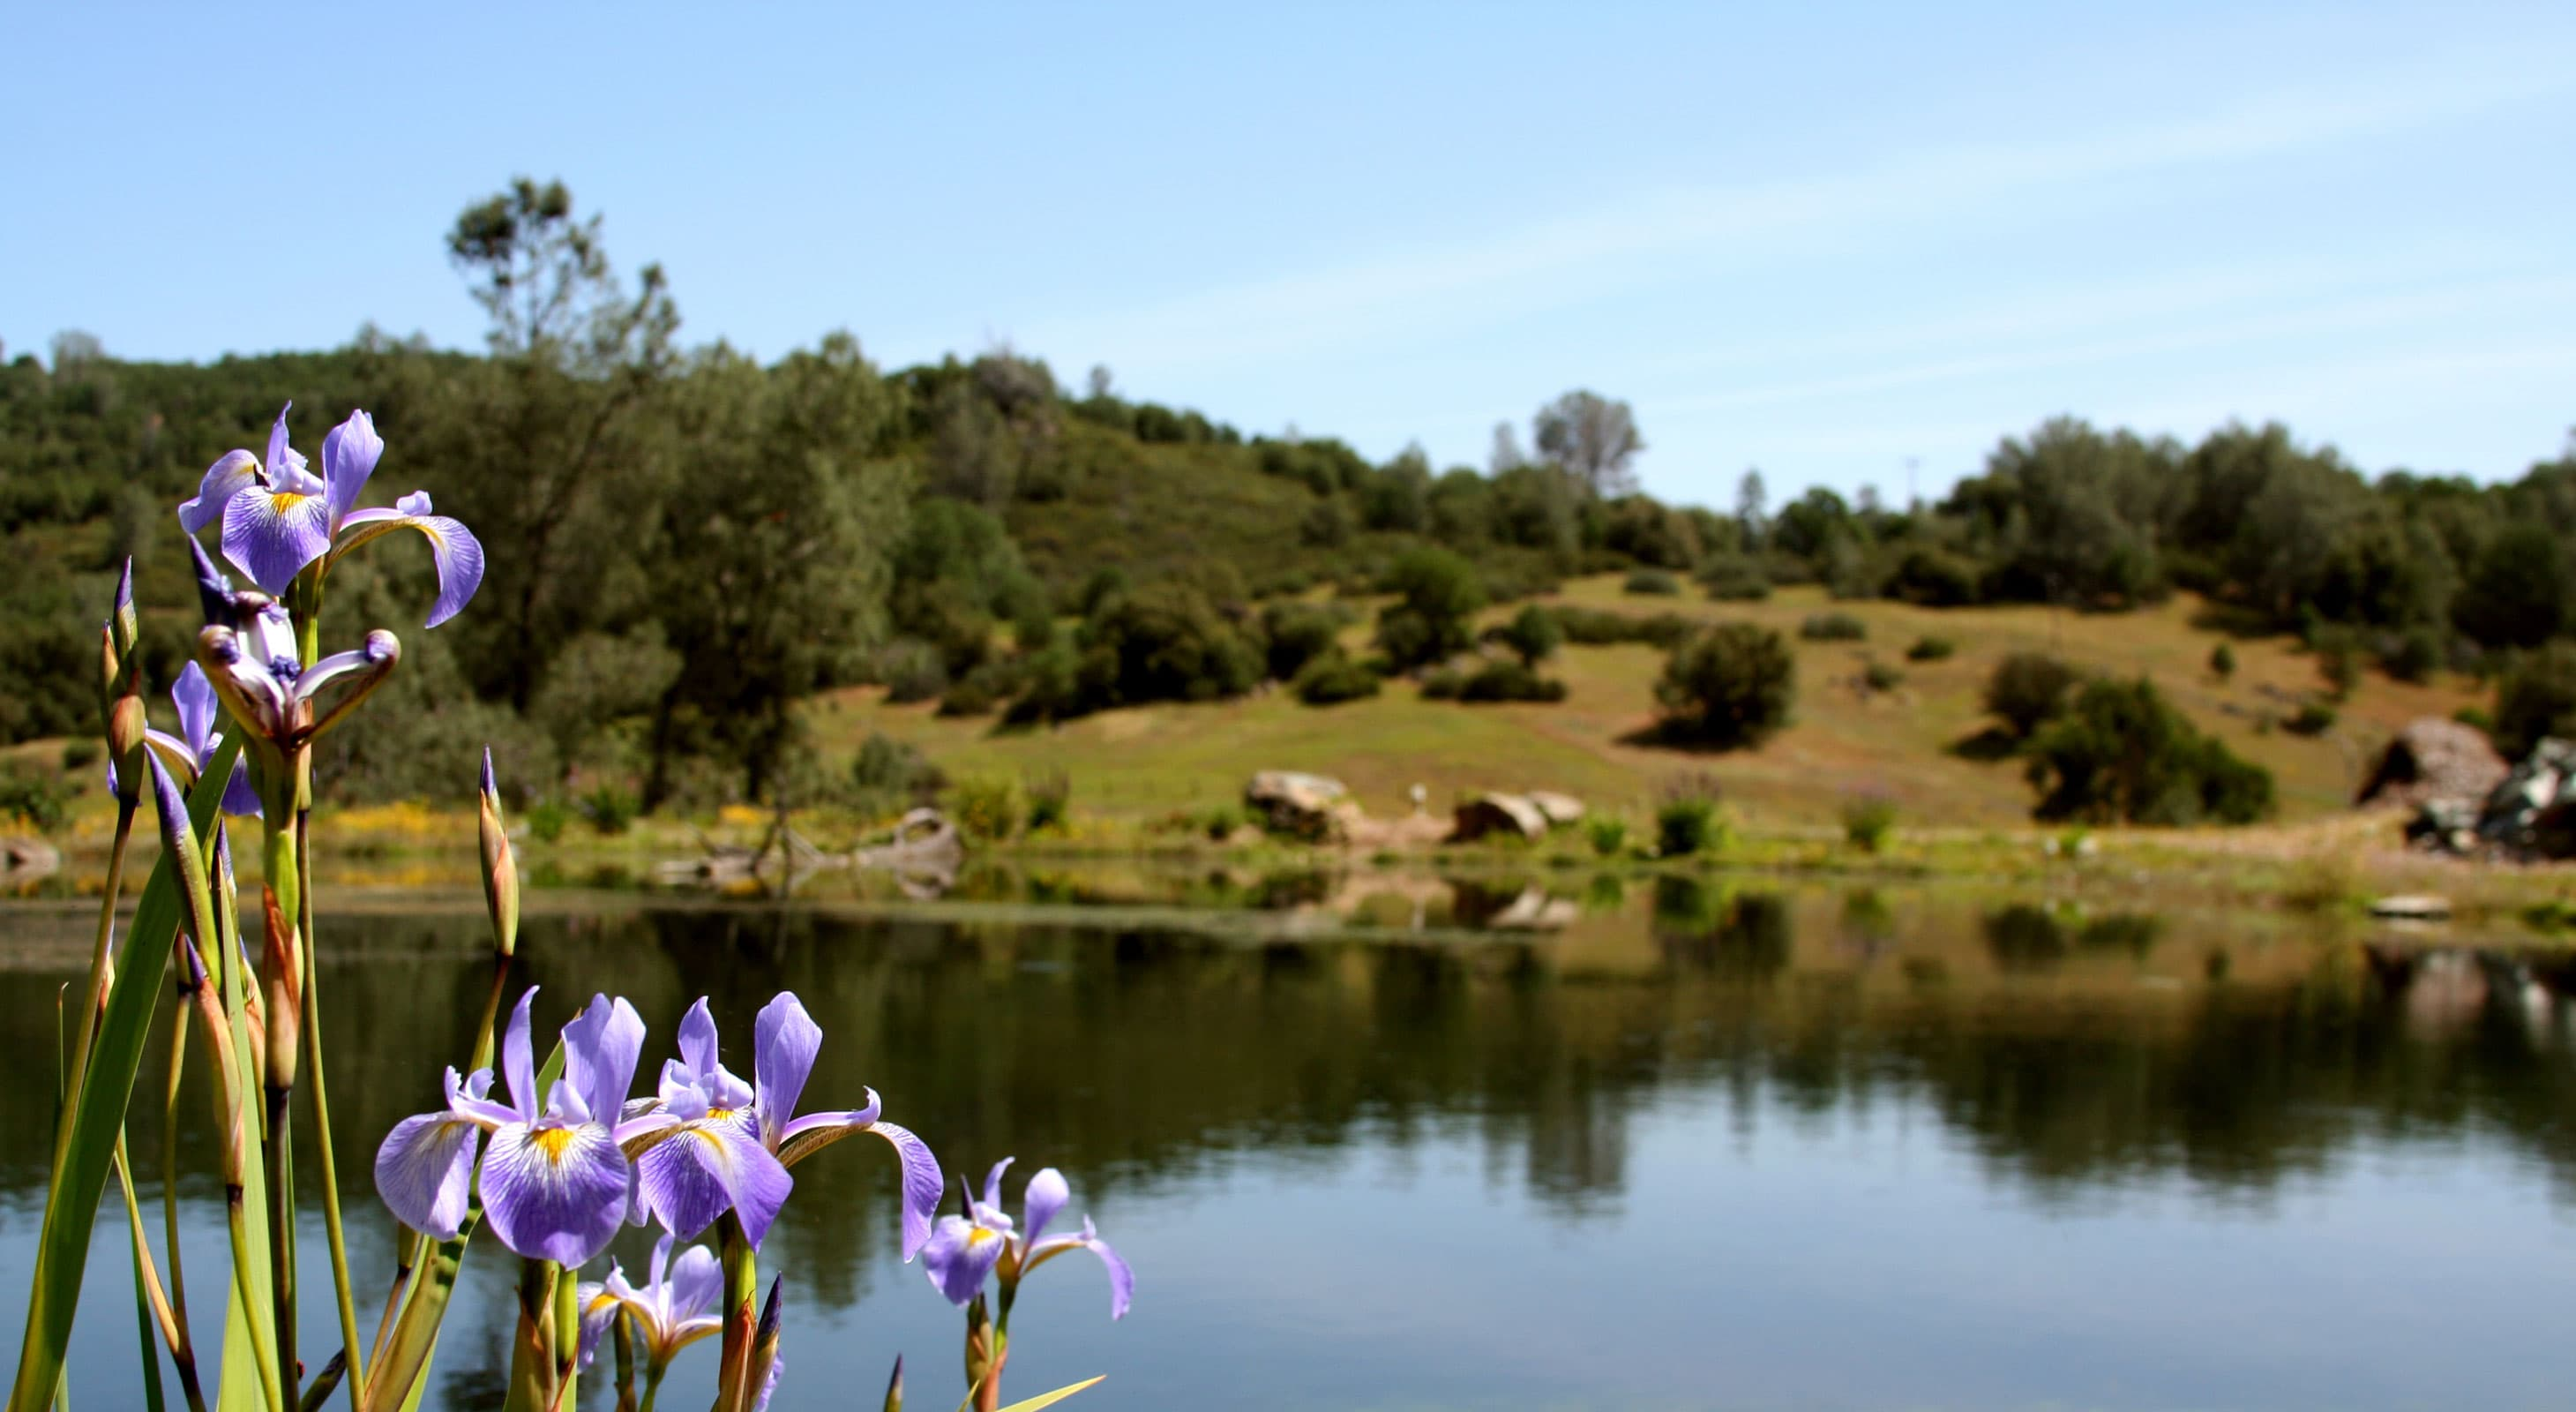 Purple flowers blooming in front of scenic, sunny lake